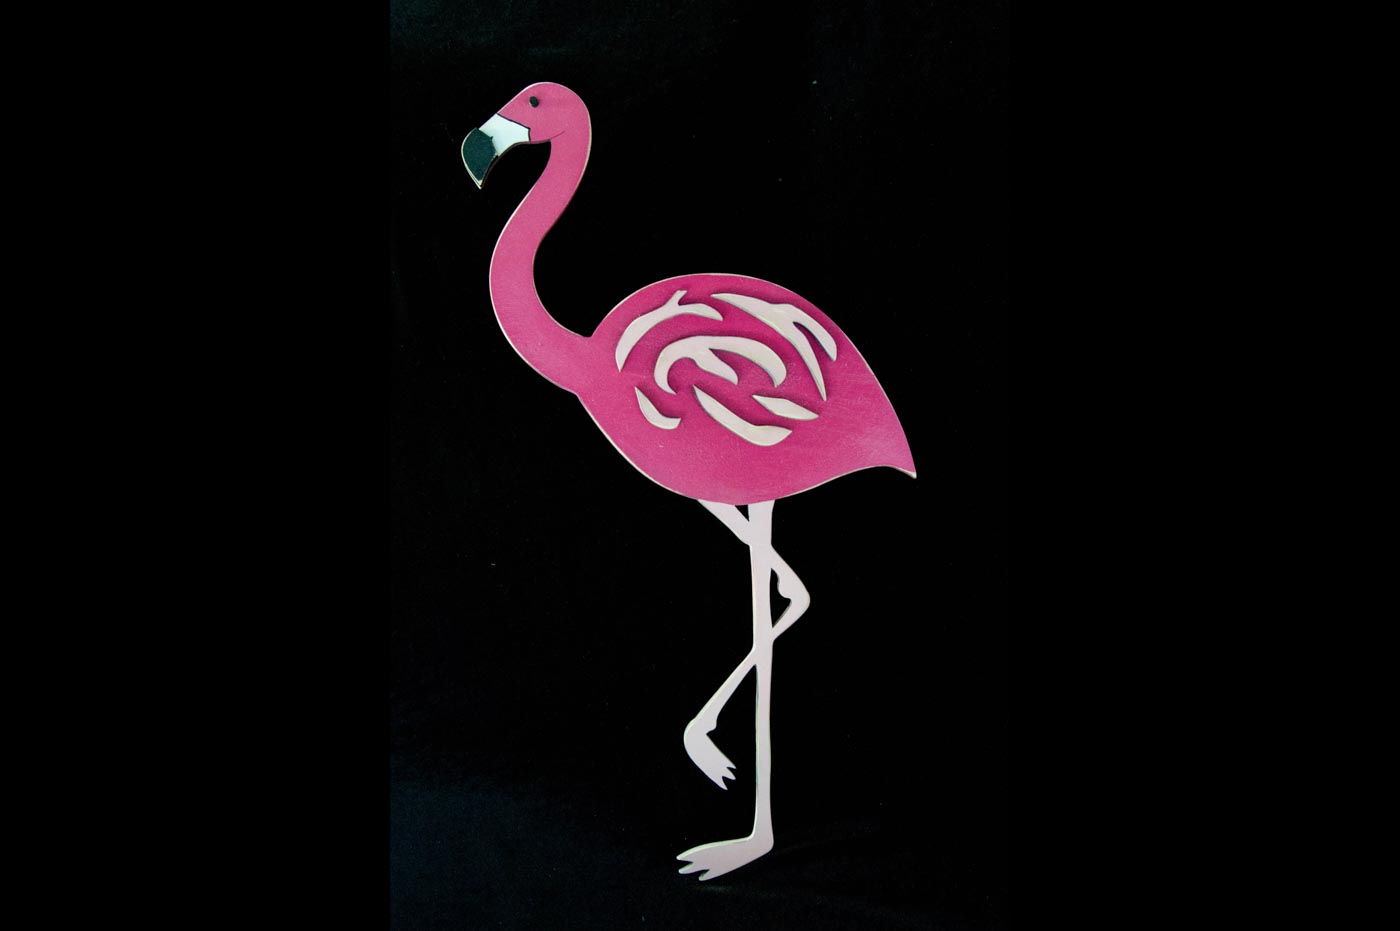 smallflamingo (1 of 3)